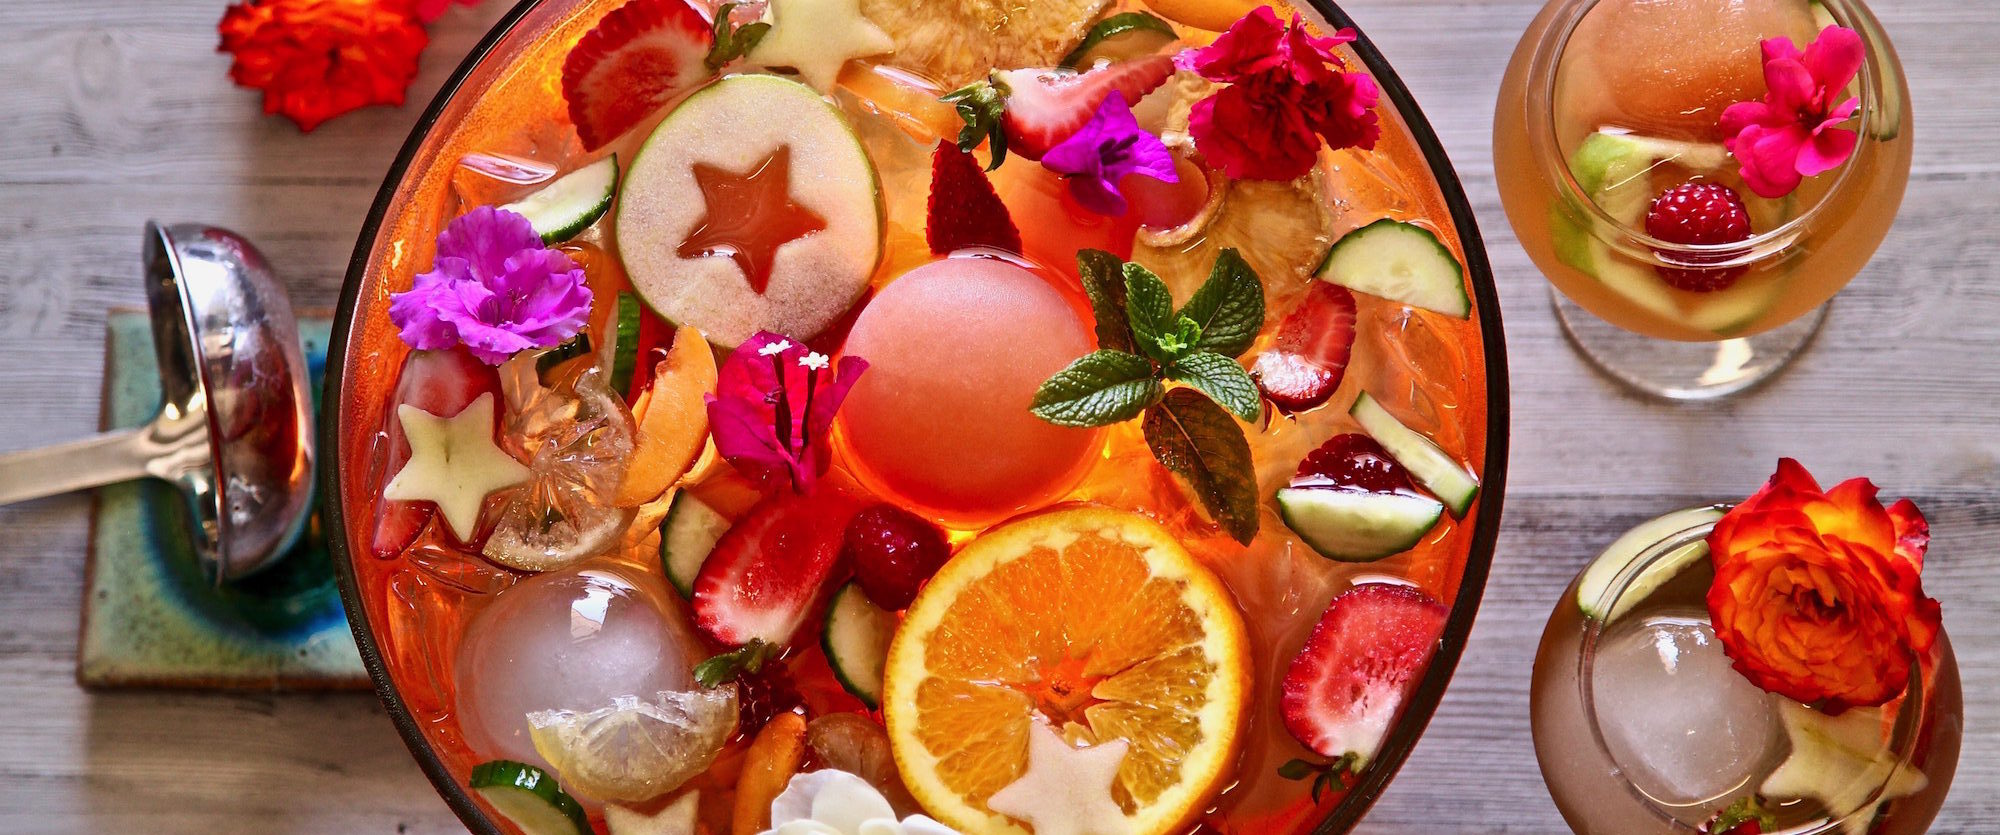 TADIN Fruity Iced Tea Punch Bowl